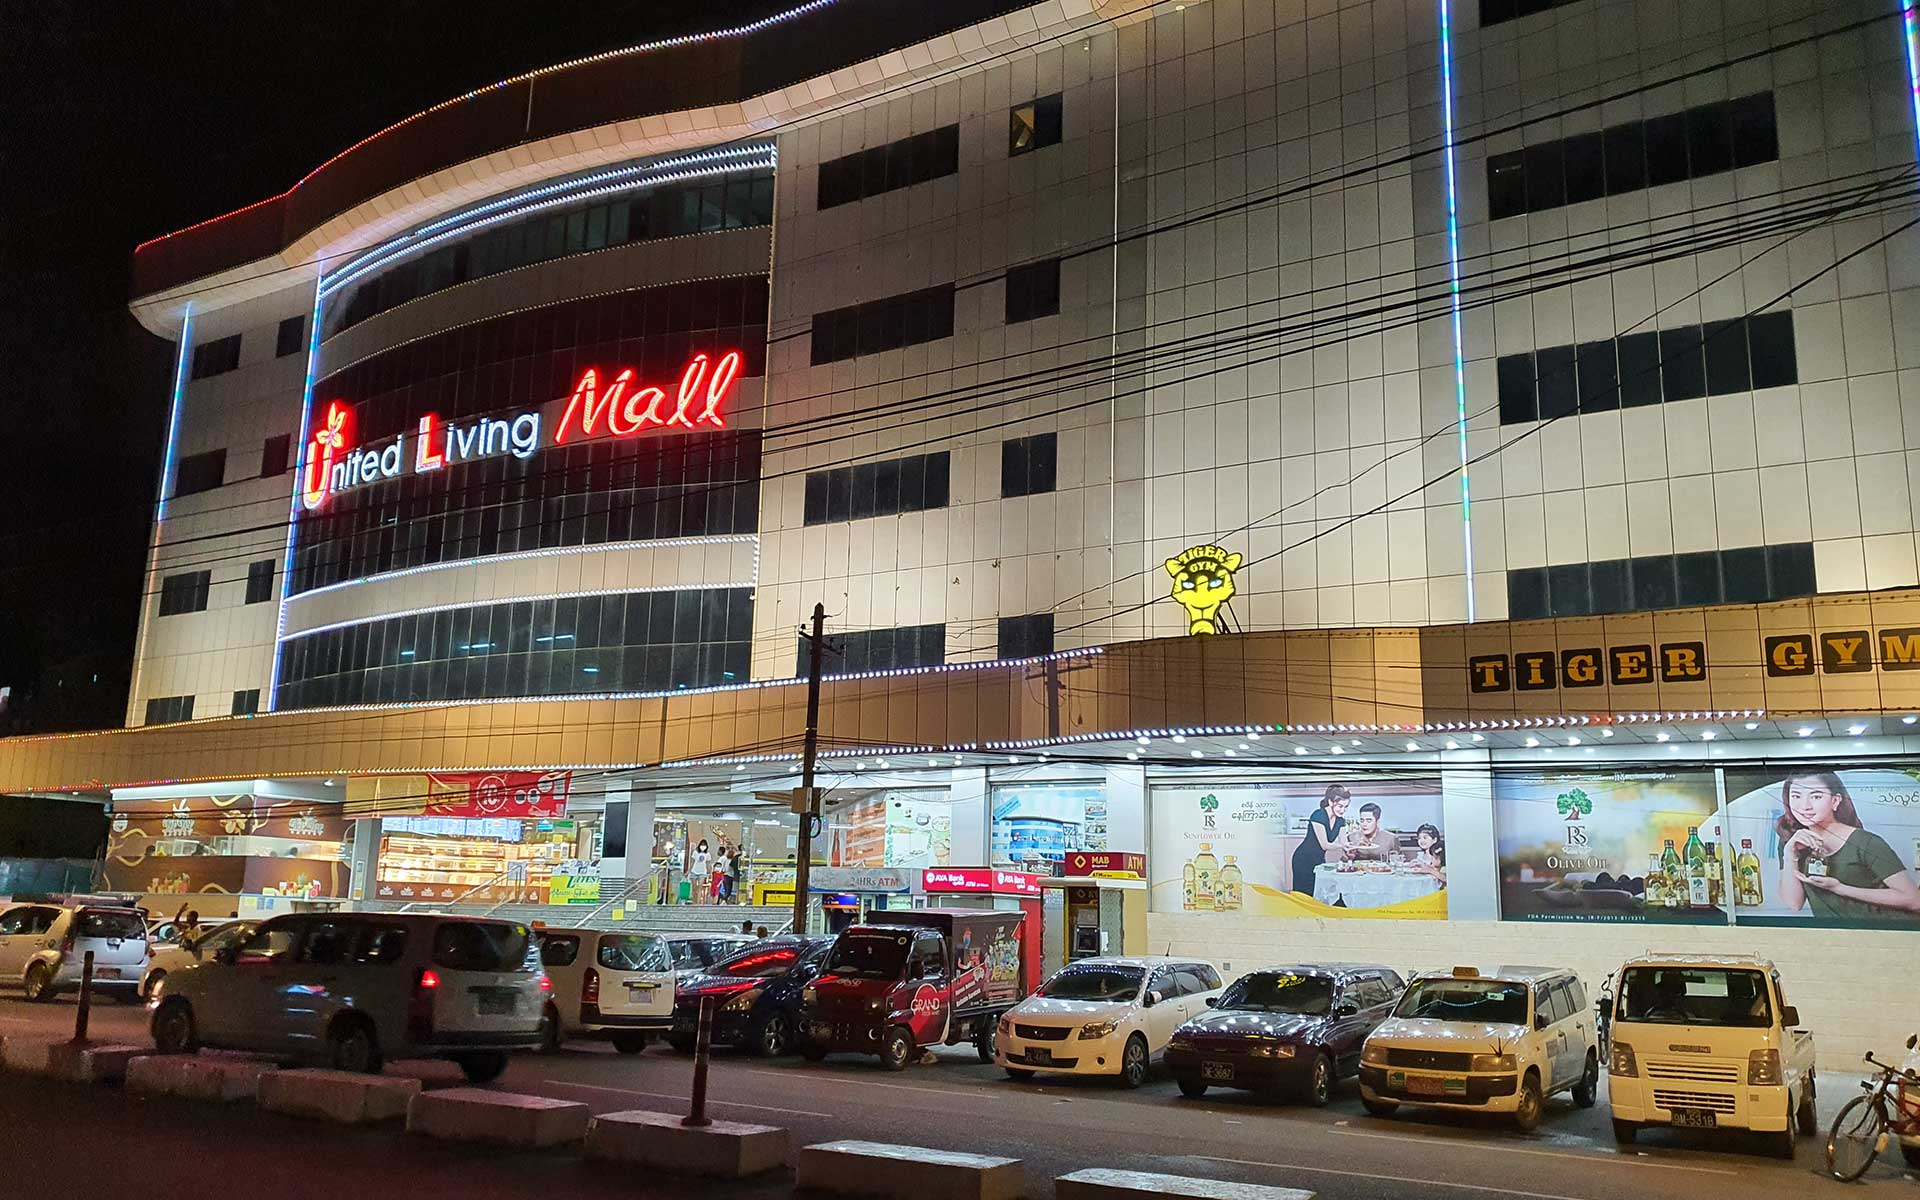 United Living Mall yangon myanmar